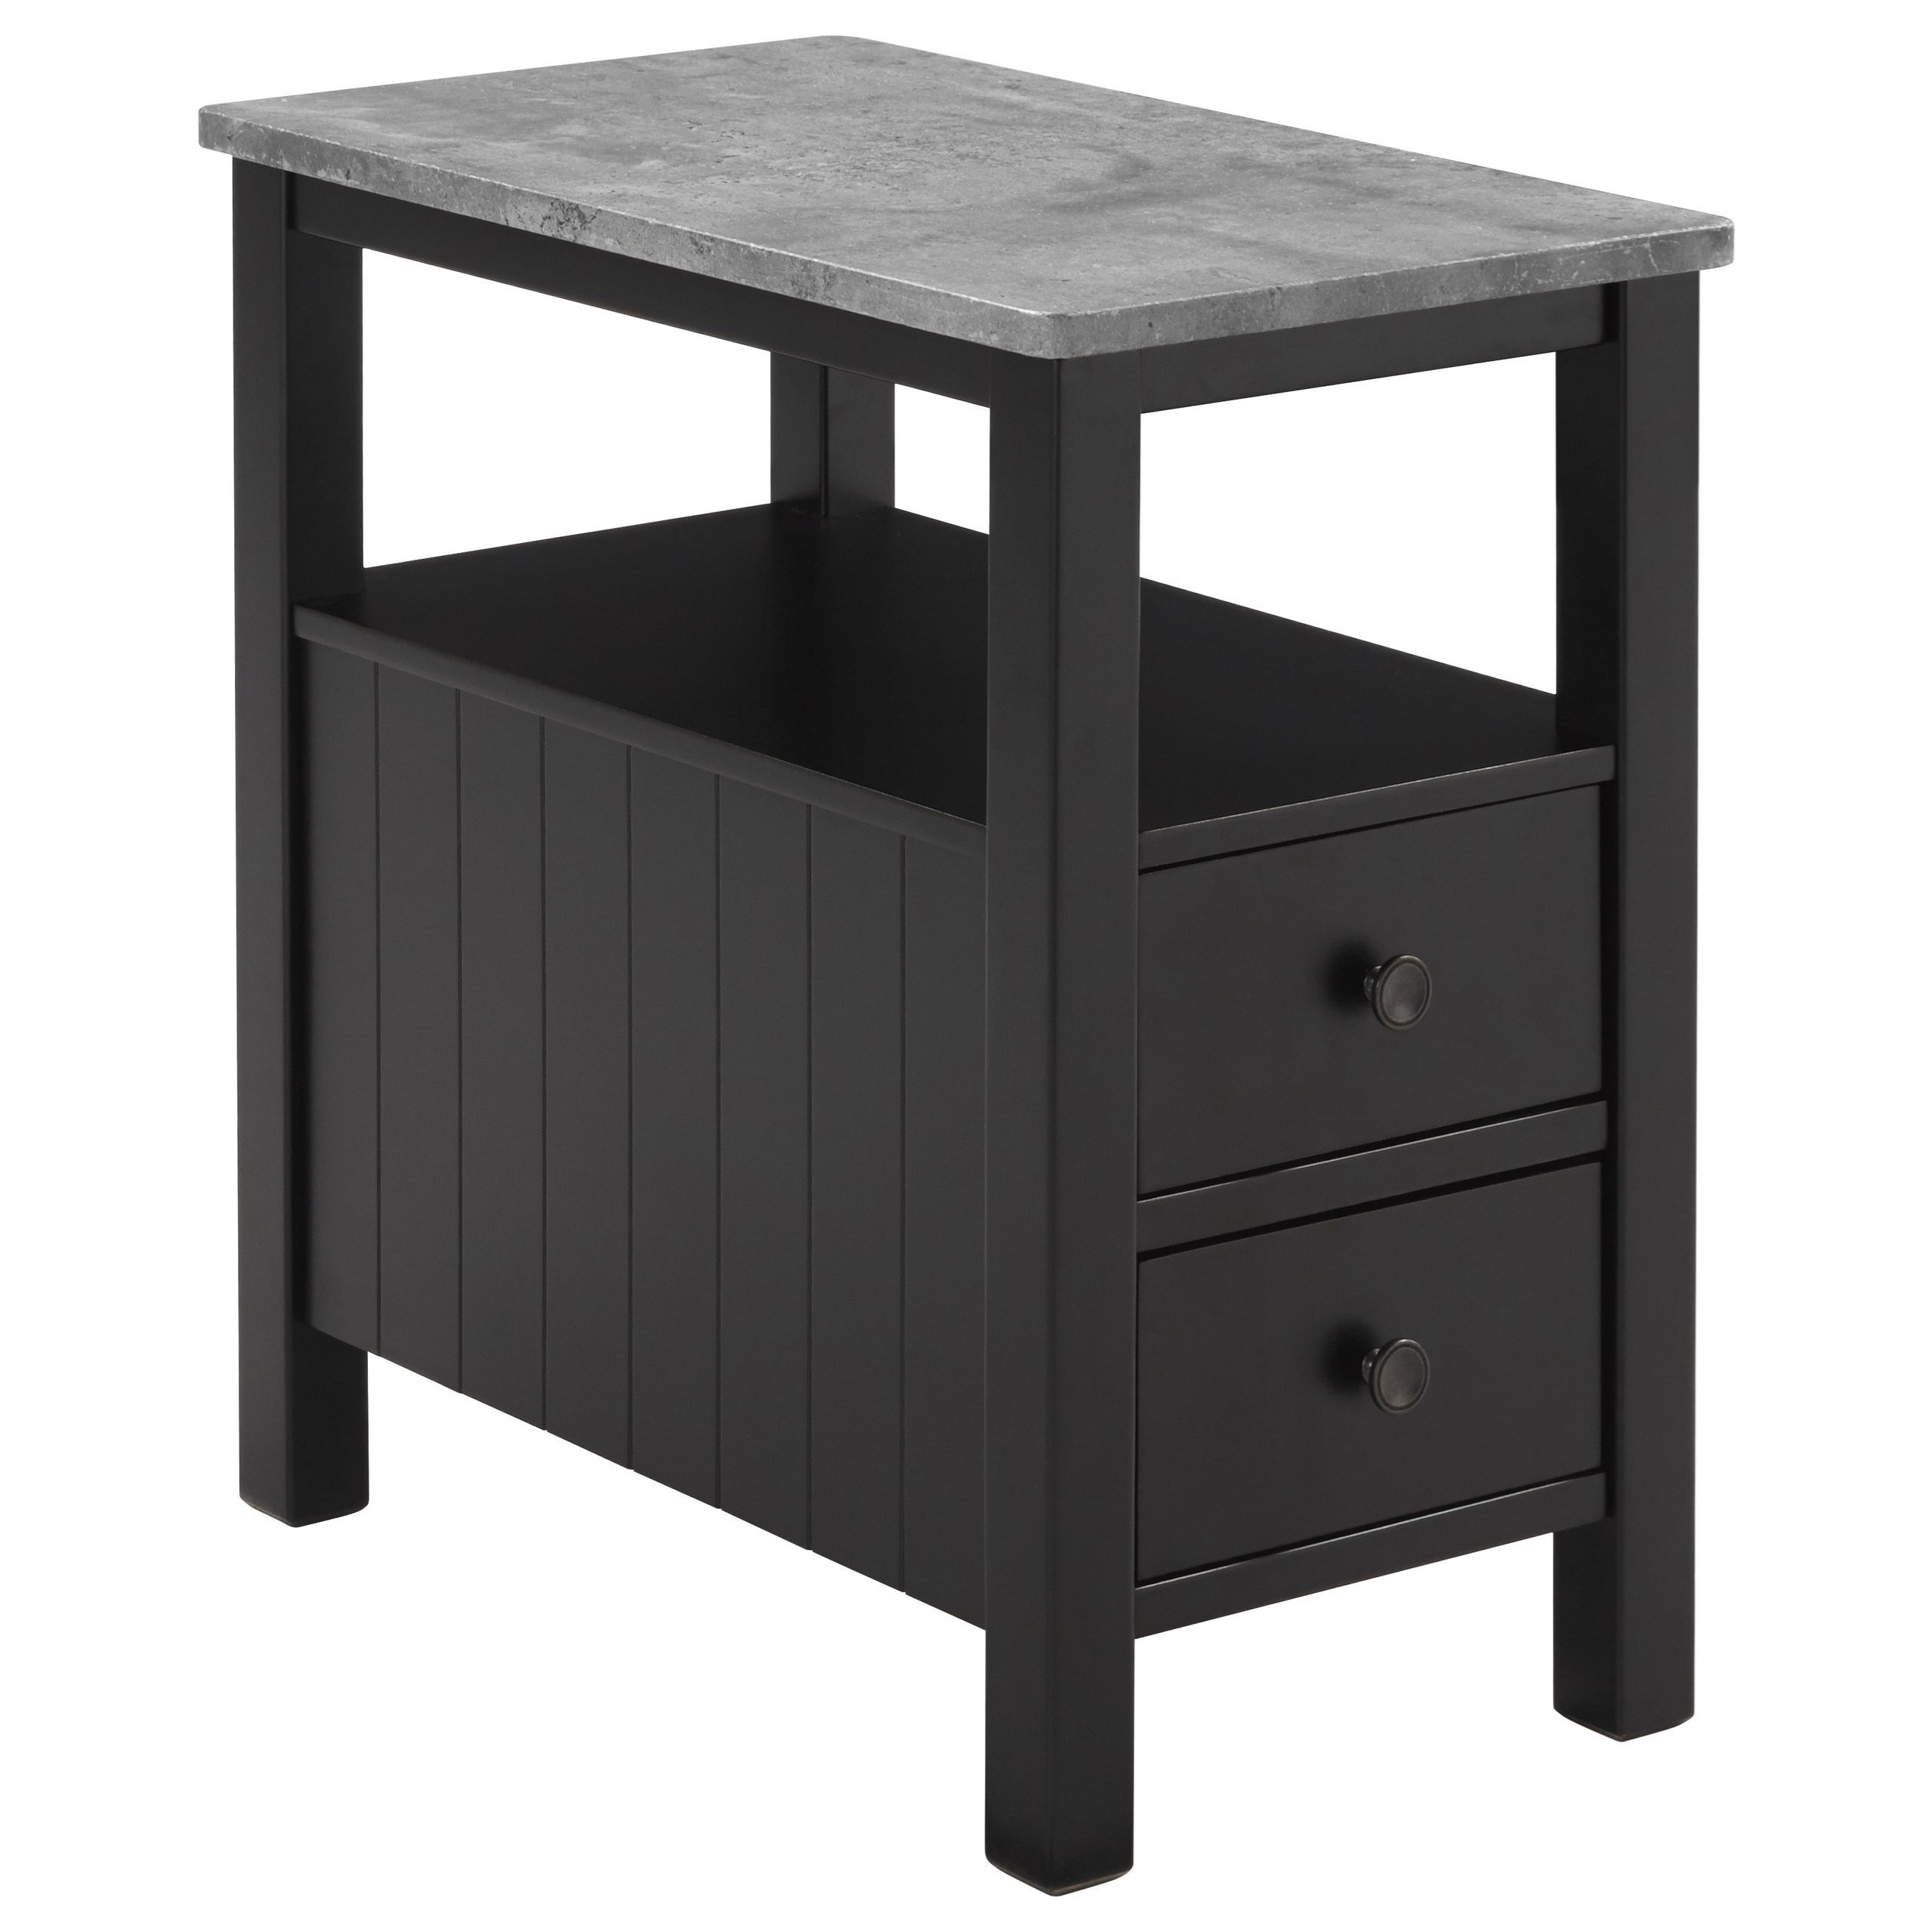 Delicieux Signature Design By Ashley Ezmonei Chair Side End Table With Faux Marble Top